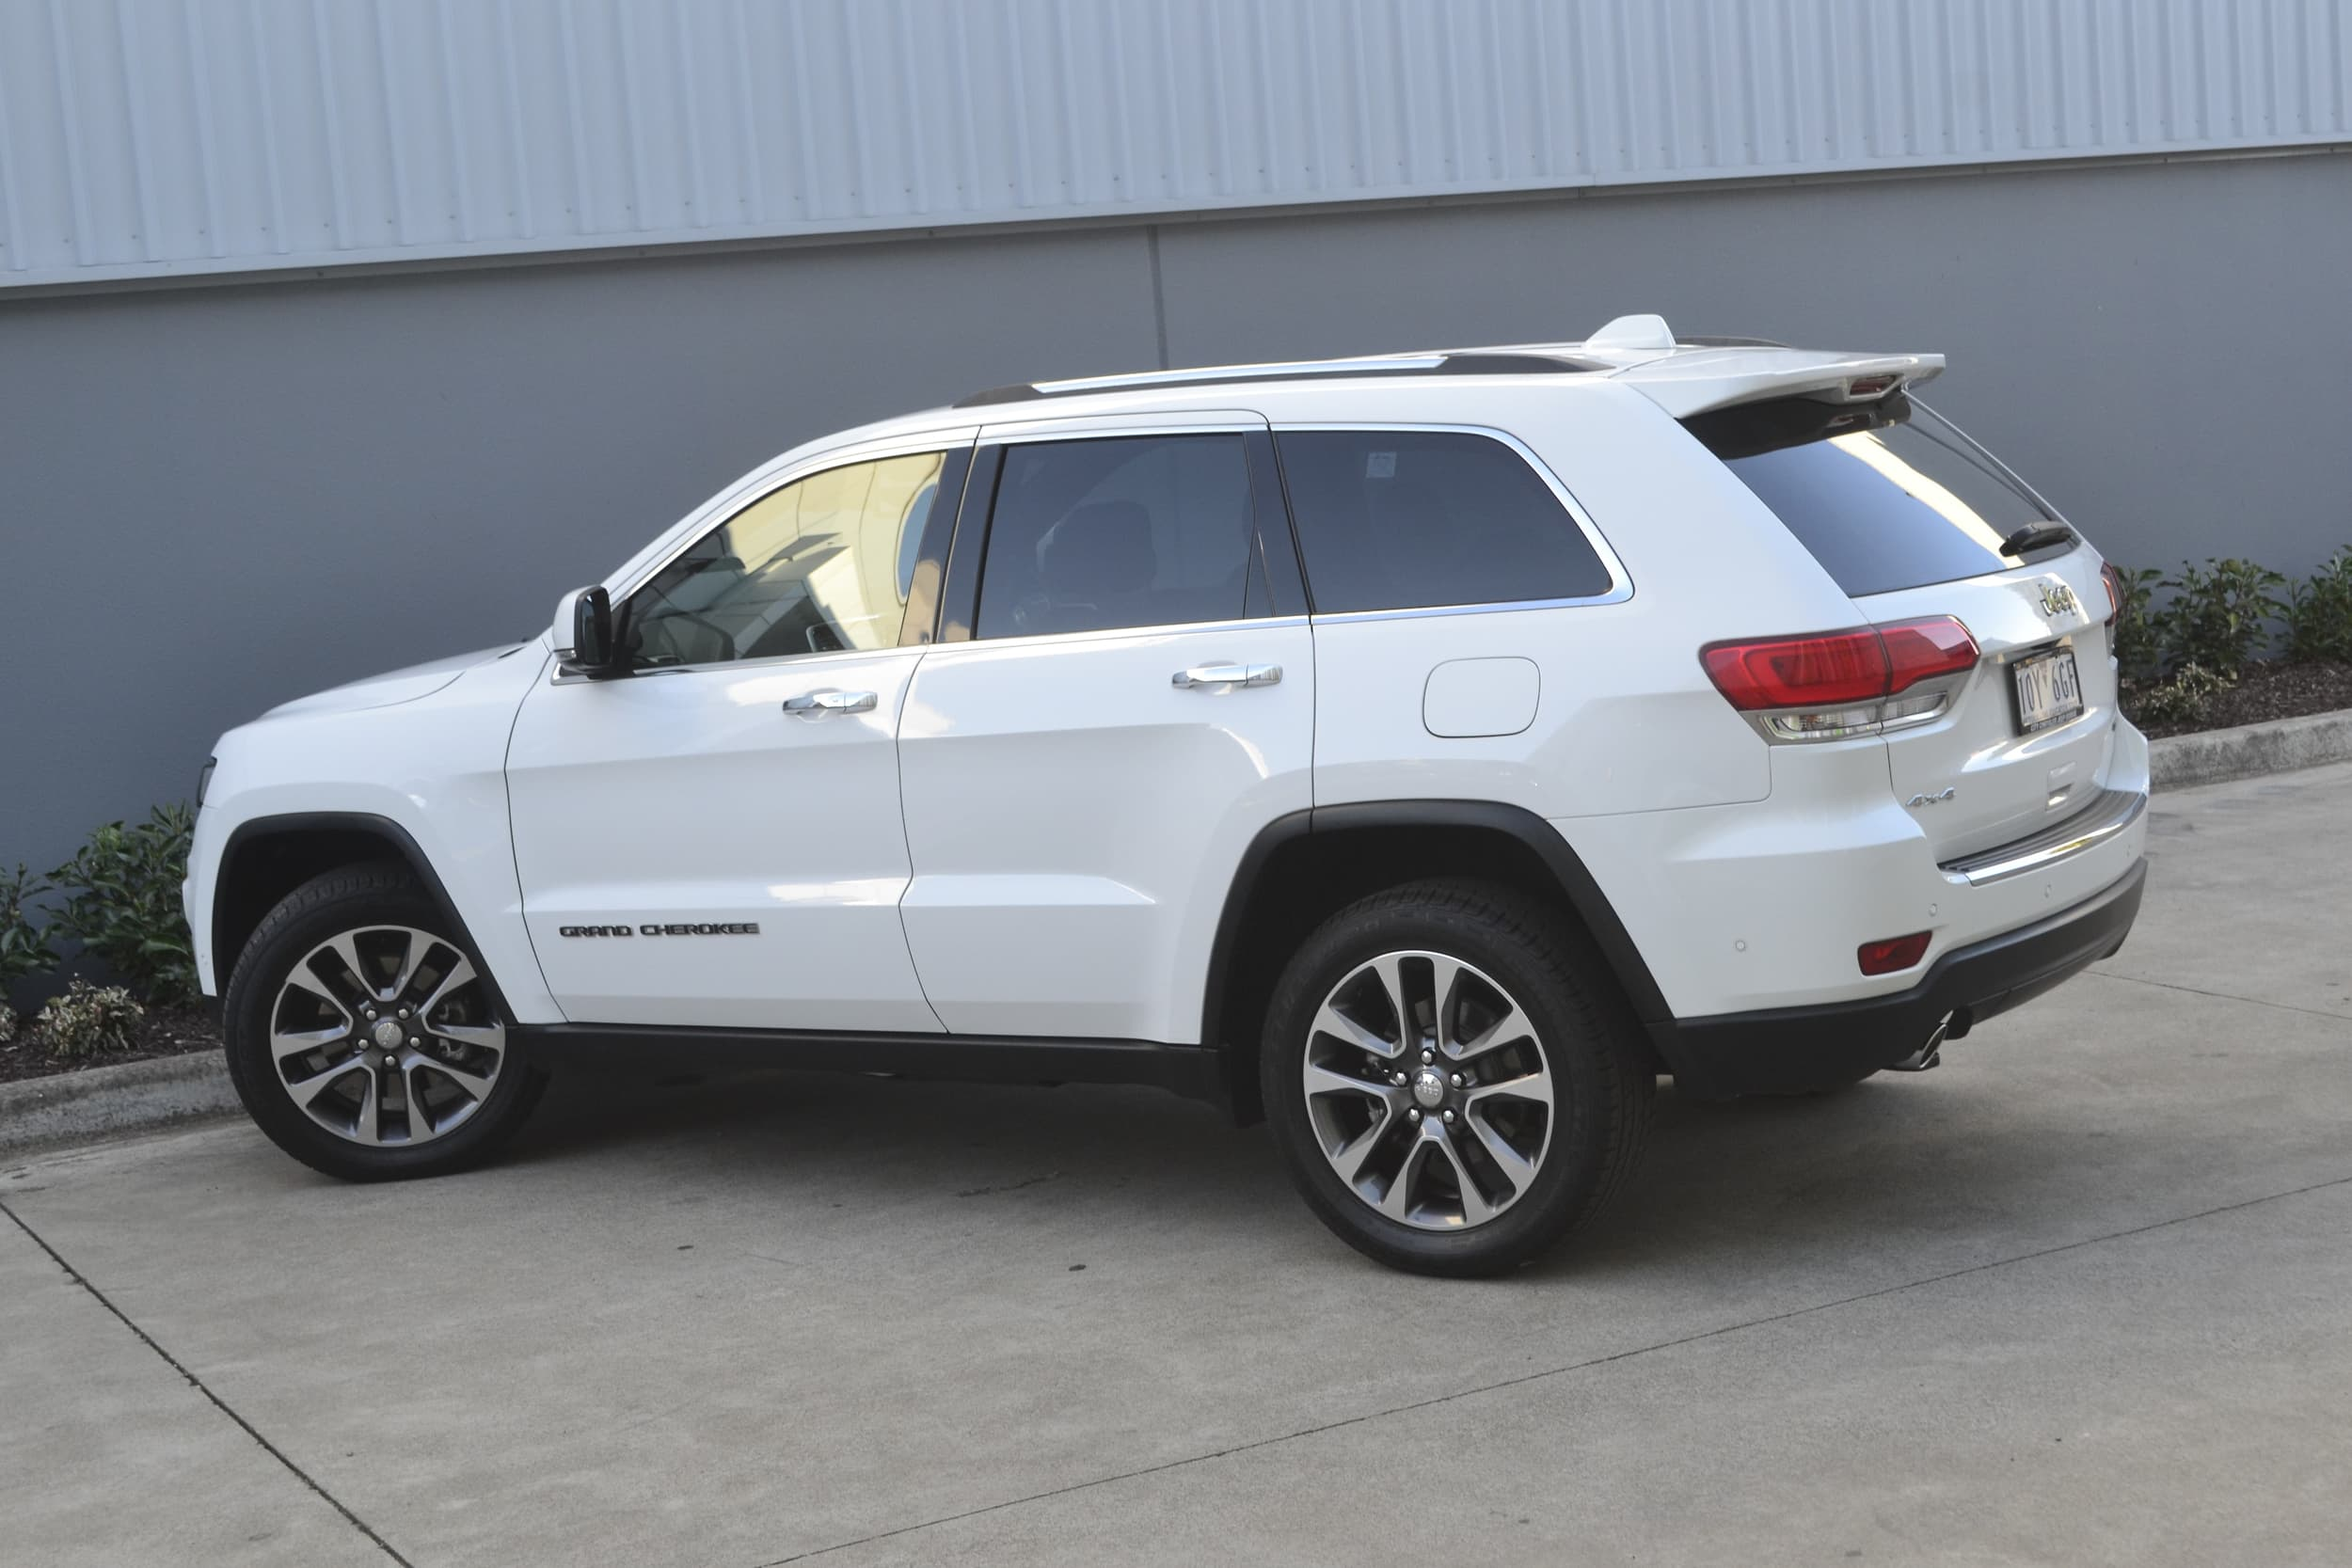 2019 Jeep Grand Cherokee Limited Auto 4x4 MY19 - image 27